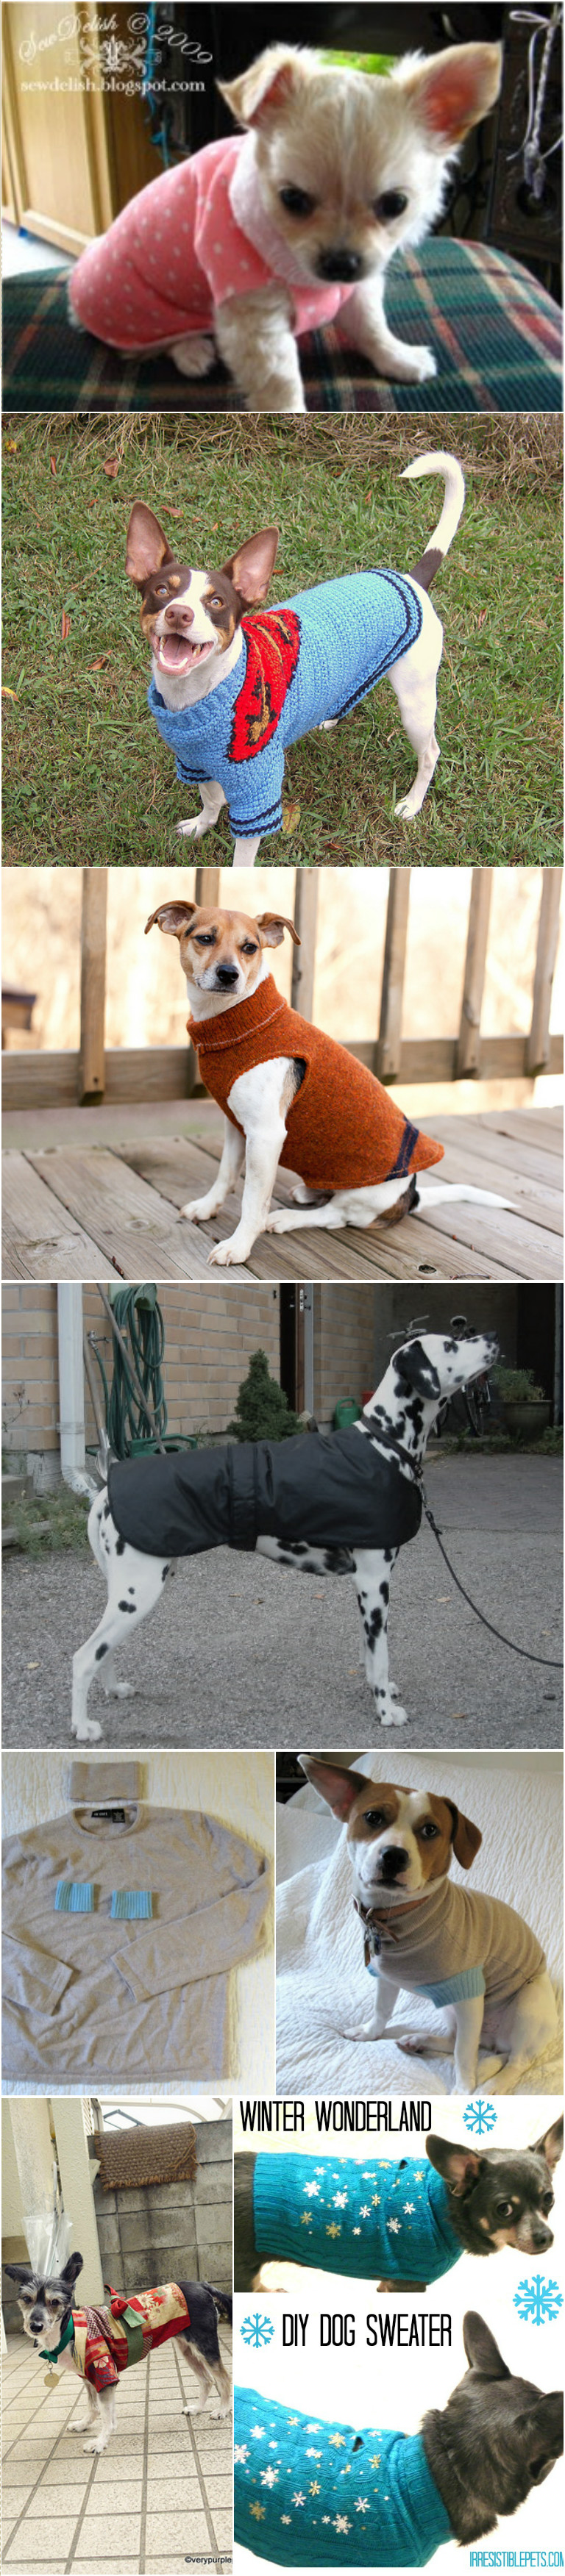 How To Make Diy Dog Sweaters 25 Awesome Ways Pondic